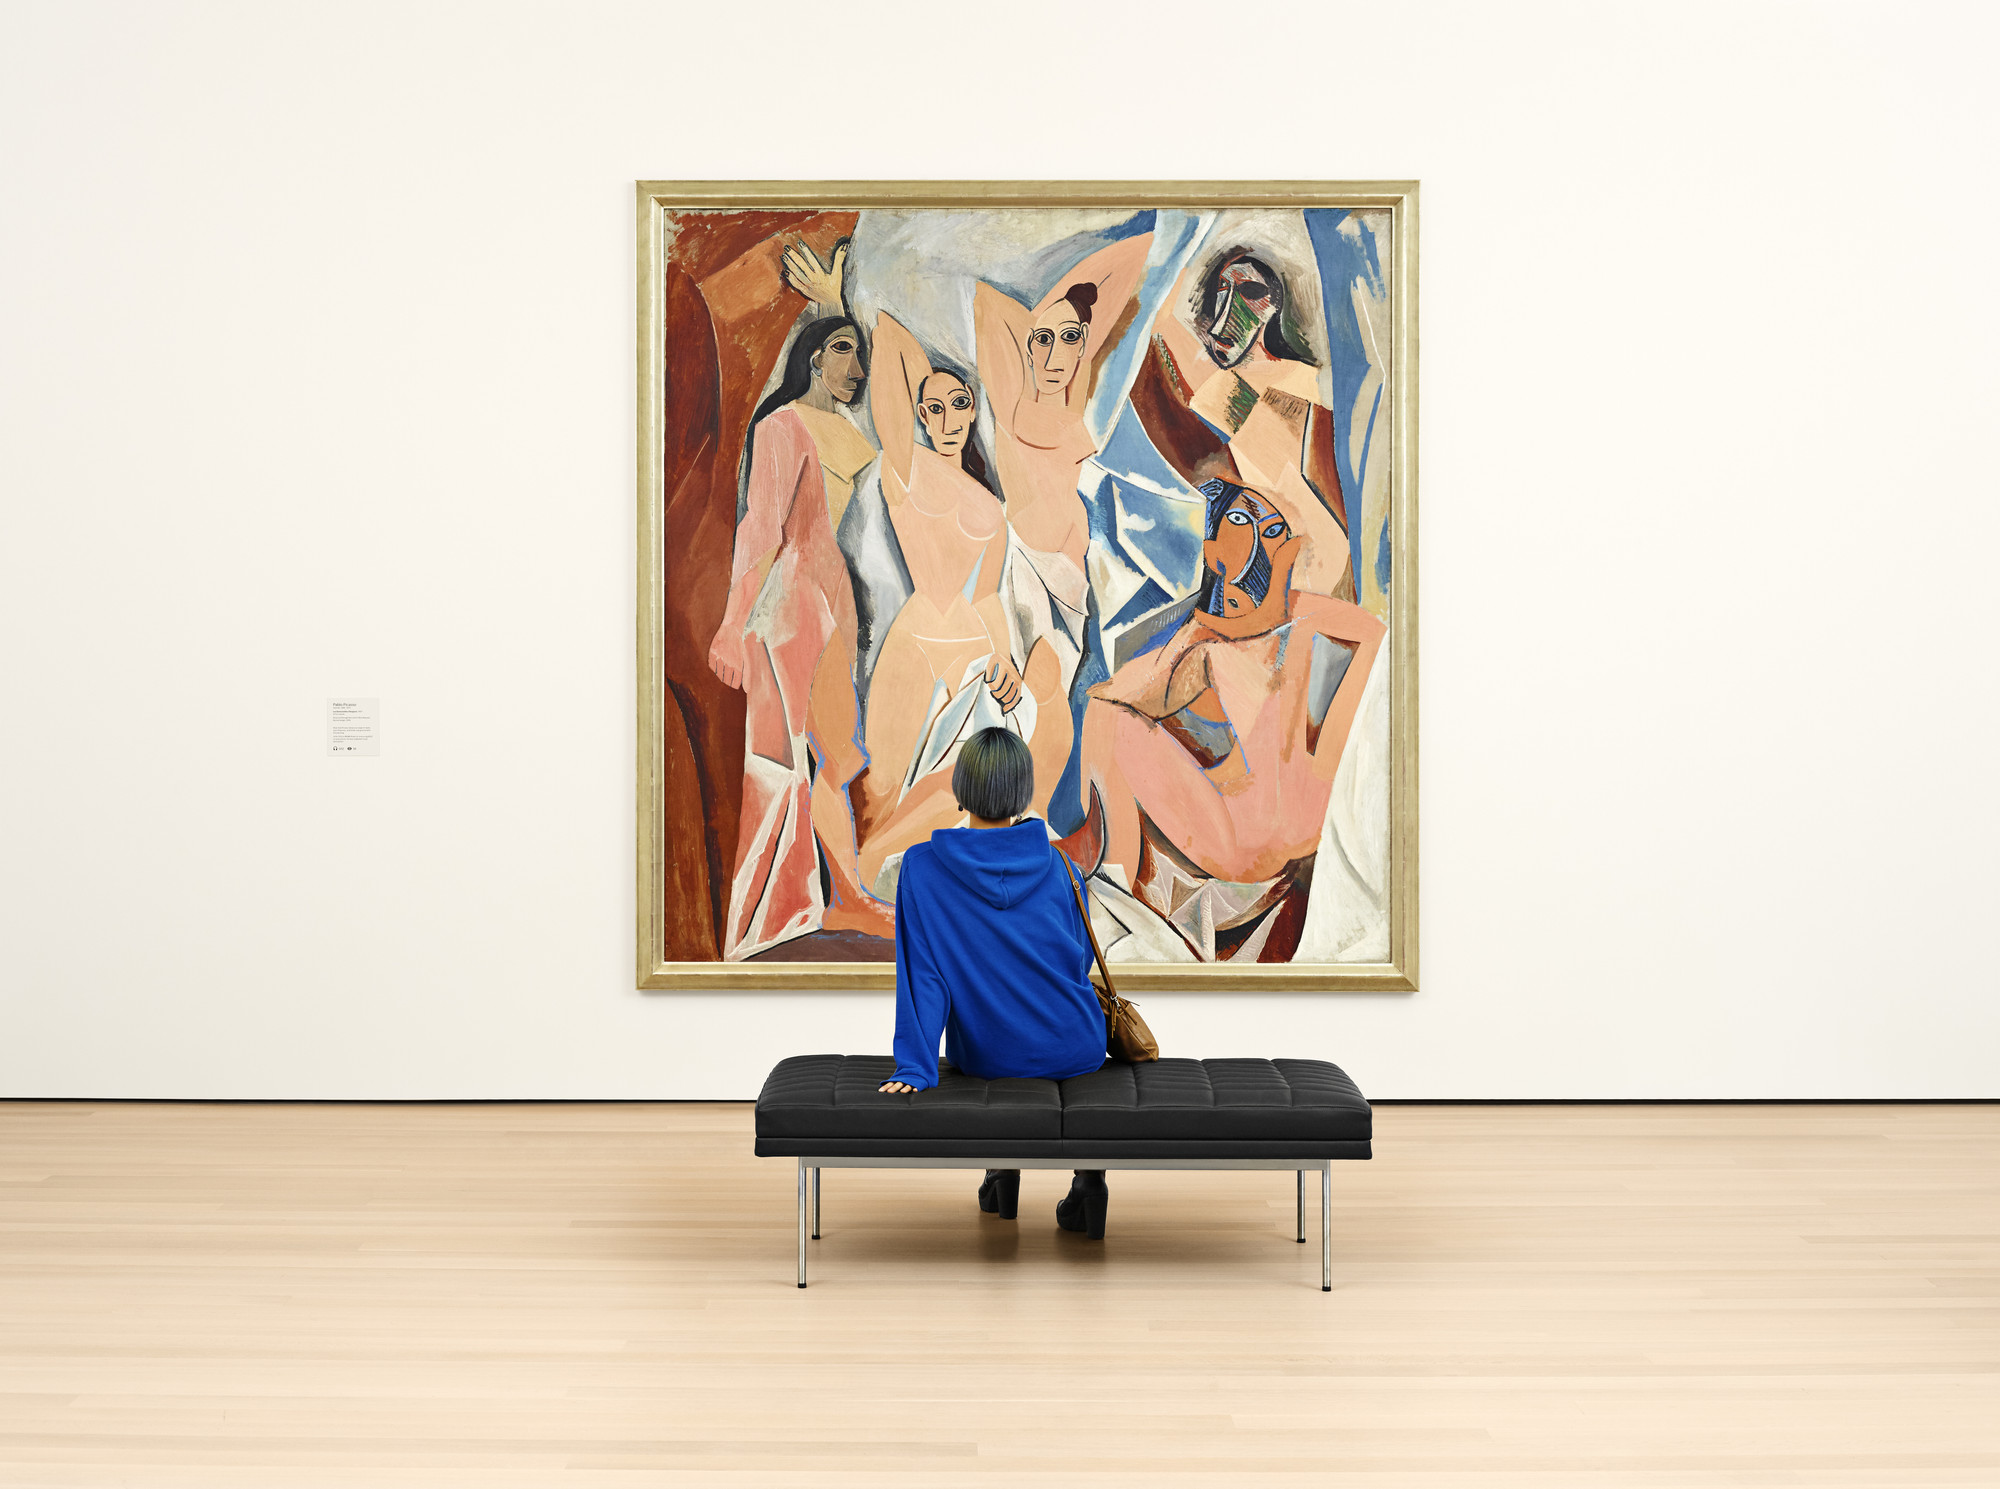 A view of the fifth-floor collection galleries. Shown: Pablo Picasso. Les Demoiselles d'Avignon. 1907. Oil on canvas. Acquired through the Lillie P. Bliss Bequest (by exchange). © 2020 Estate of Pablo Picasso/Artists Rights Society (ARS), New York. Photo: Noah Kalina